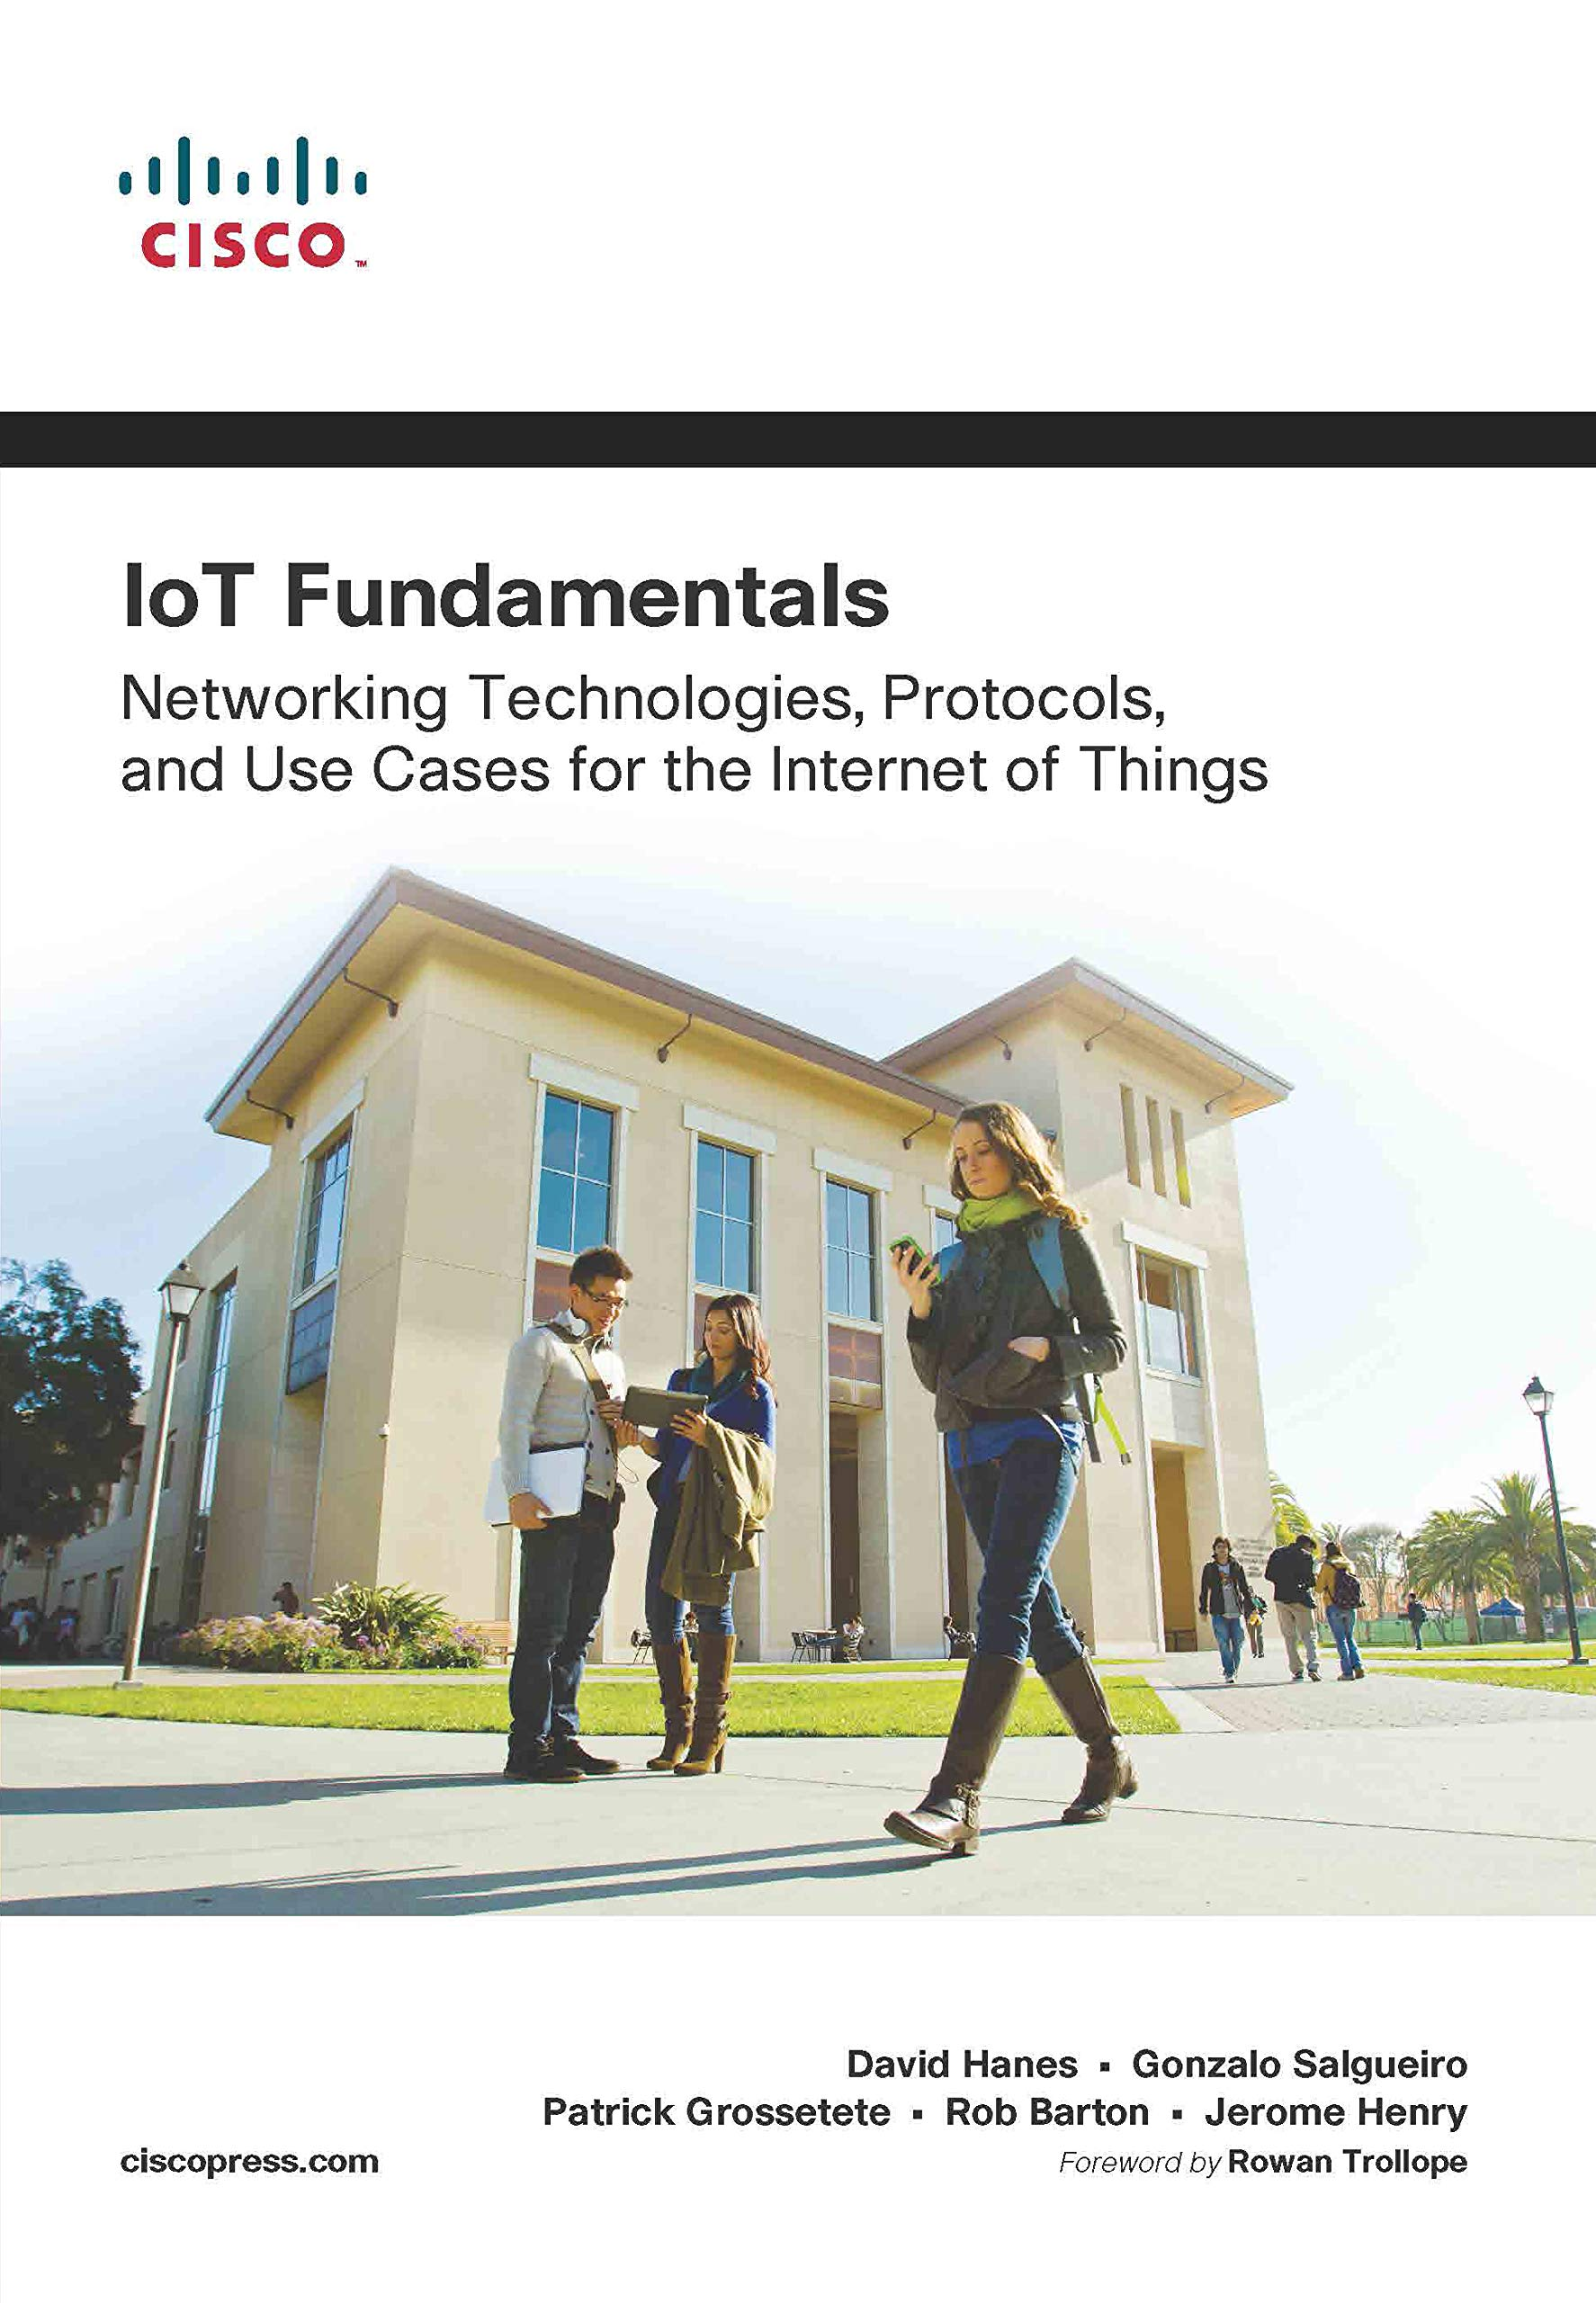 IoT Fundamentals | Networking Technologies, Protocols, and Use Cases for the Internet of Things | First Edition | By Pearson